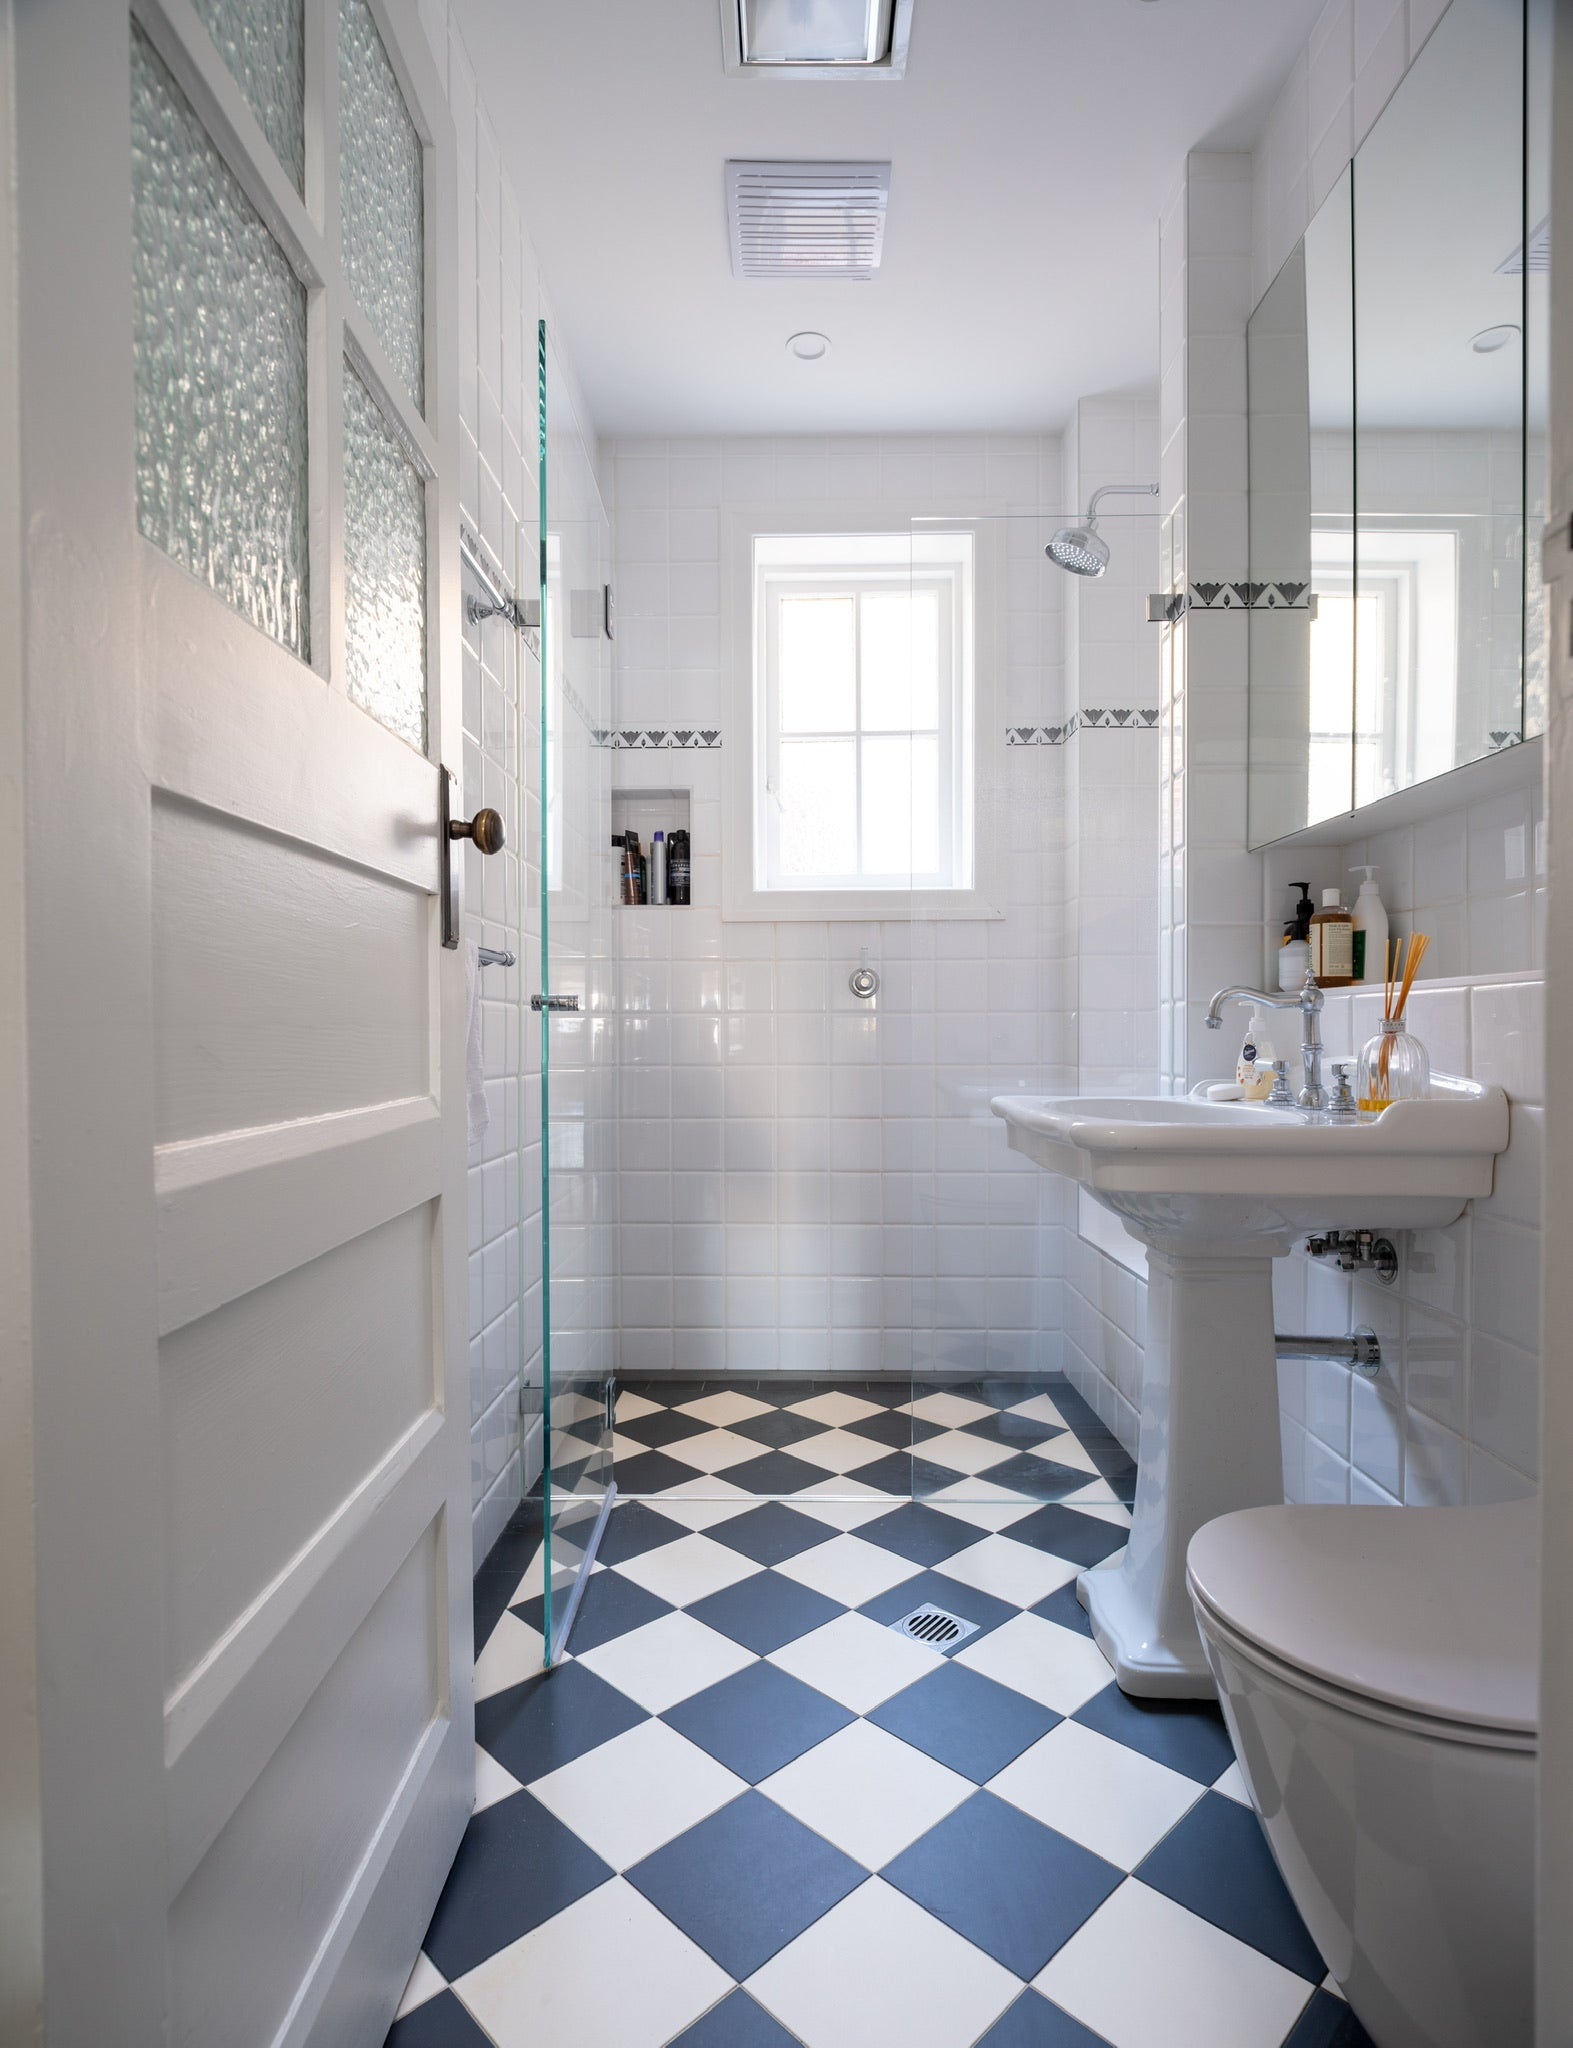 Subway_tiles_bathroom_walls